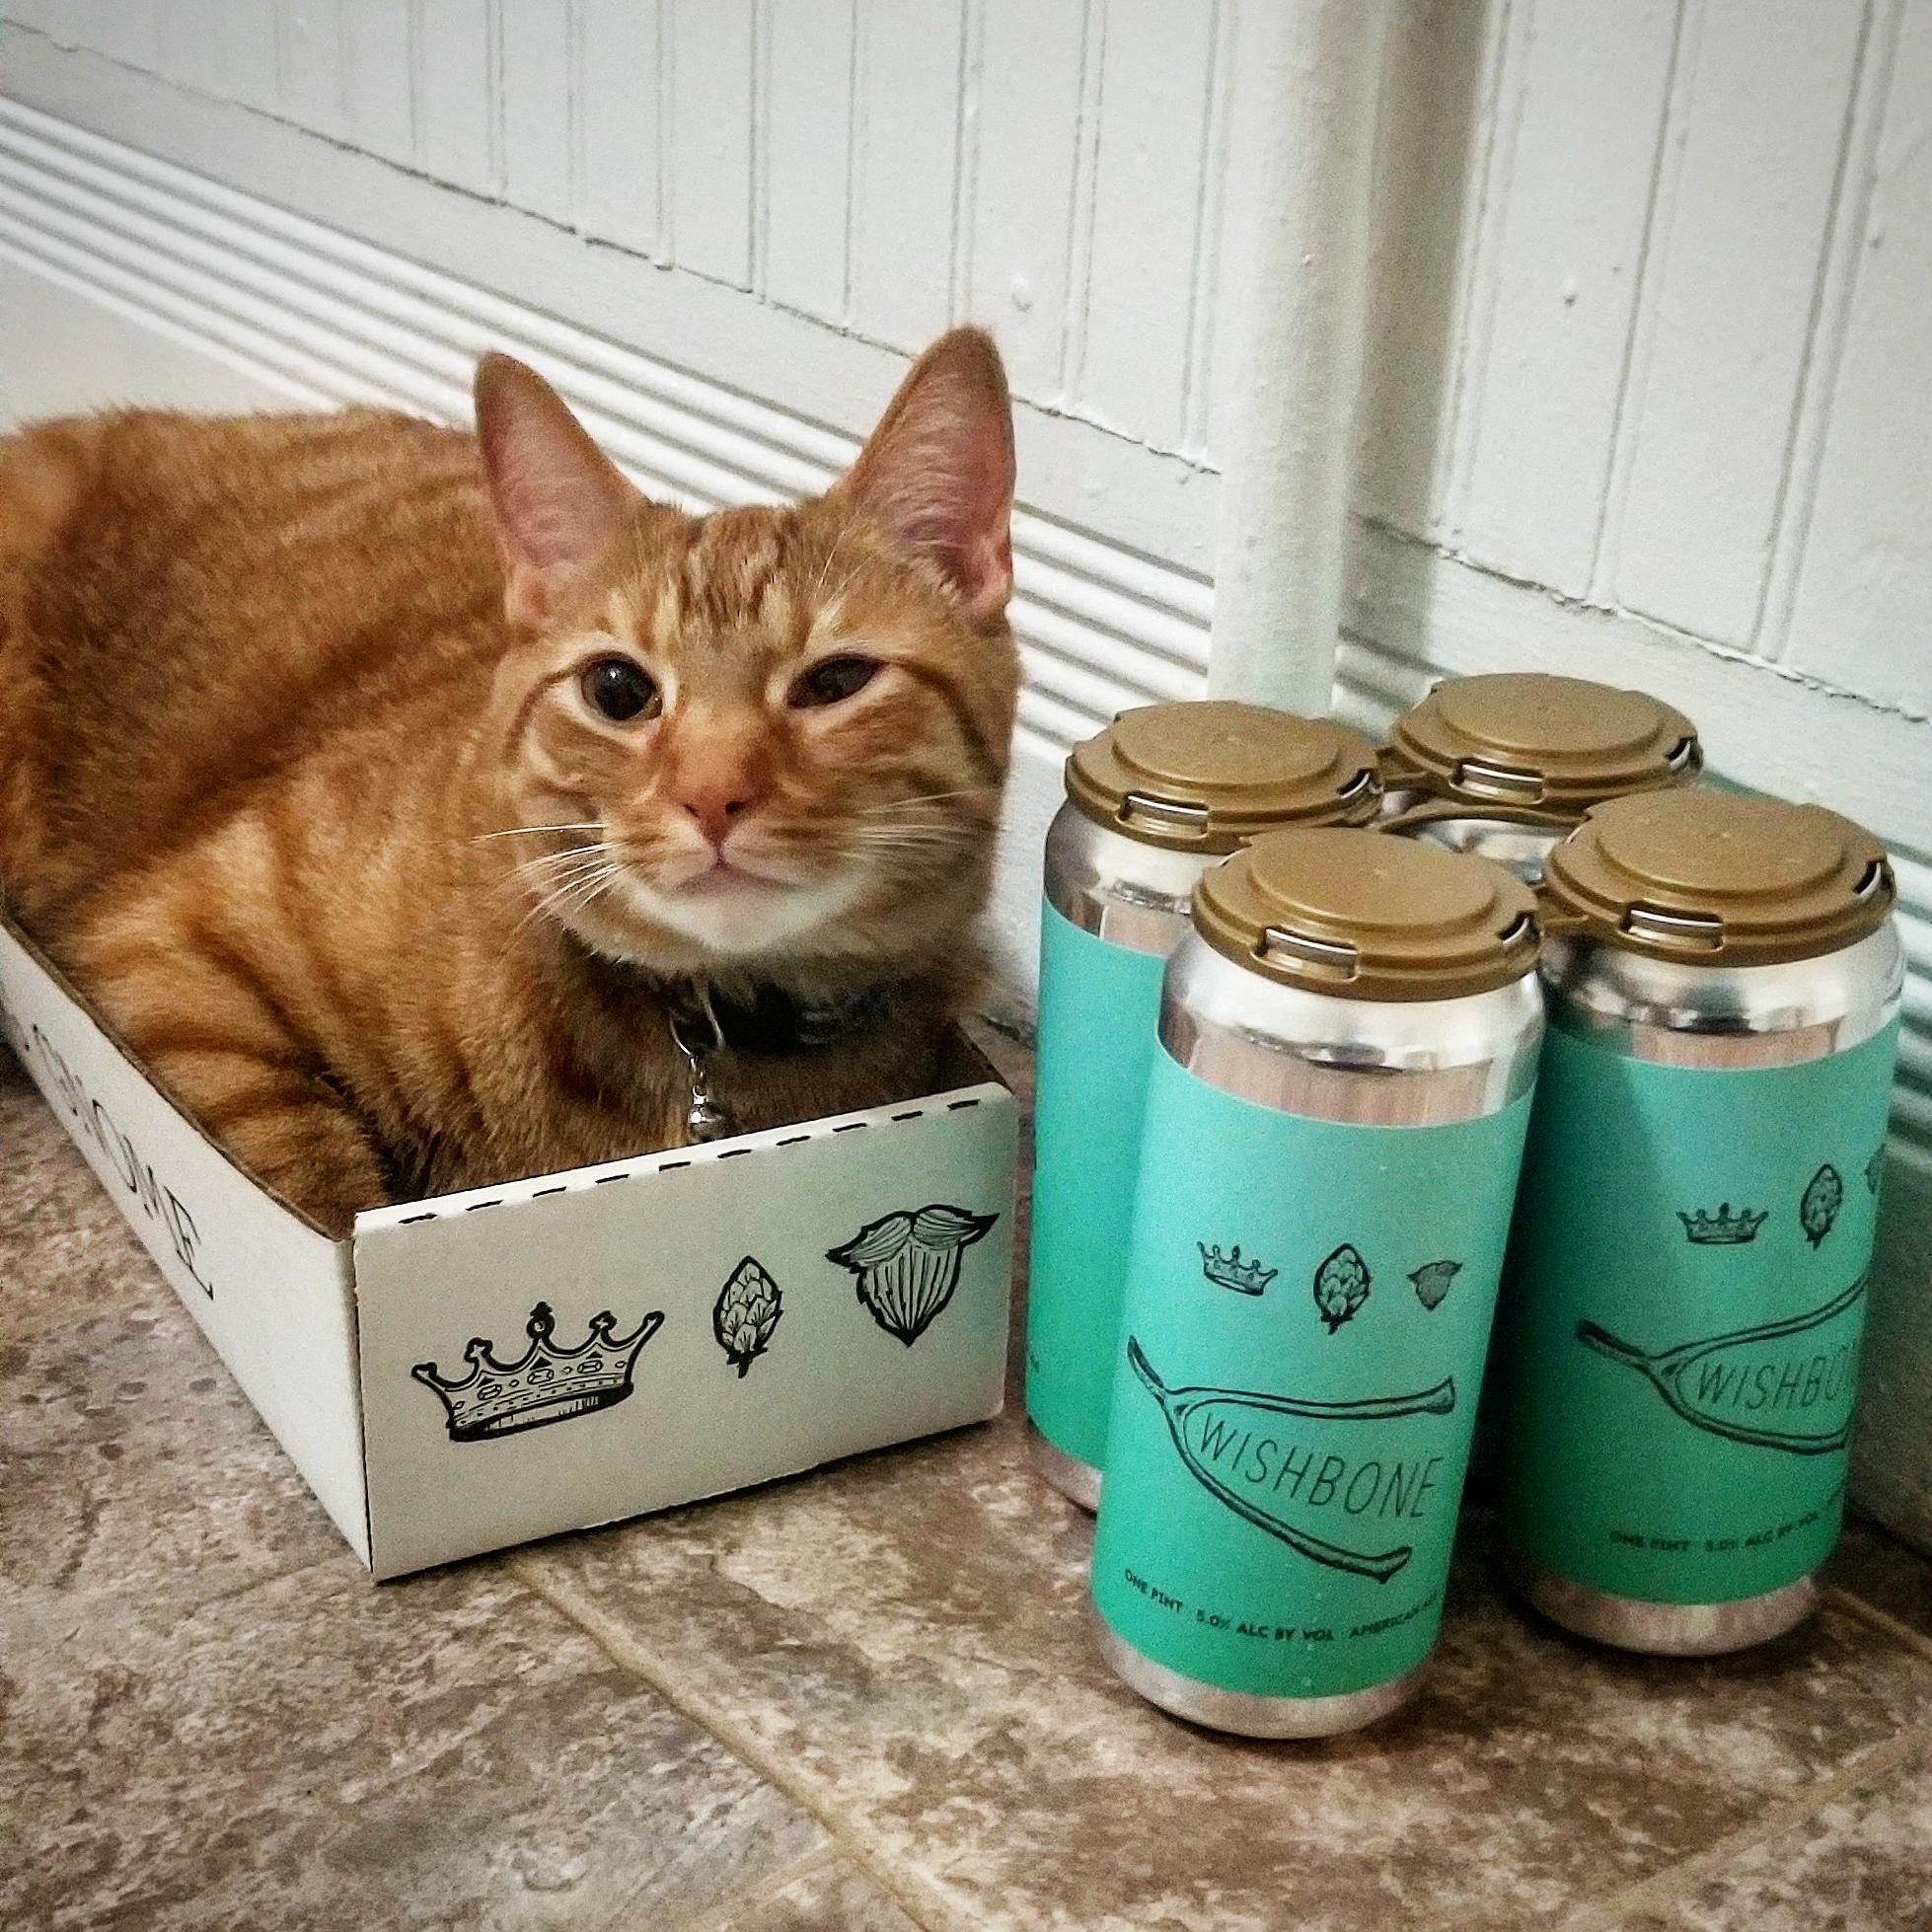 Carl was as excited for the box as i was for the beer.